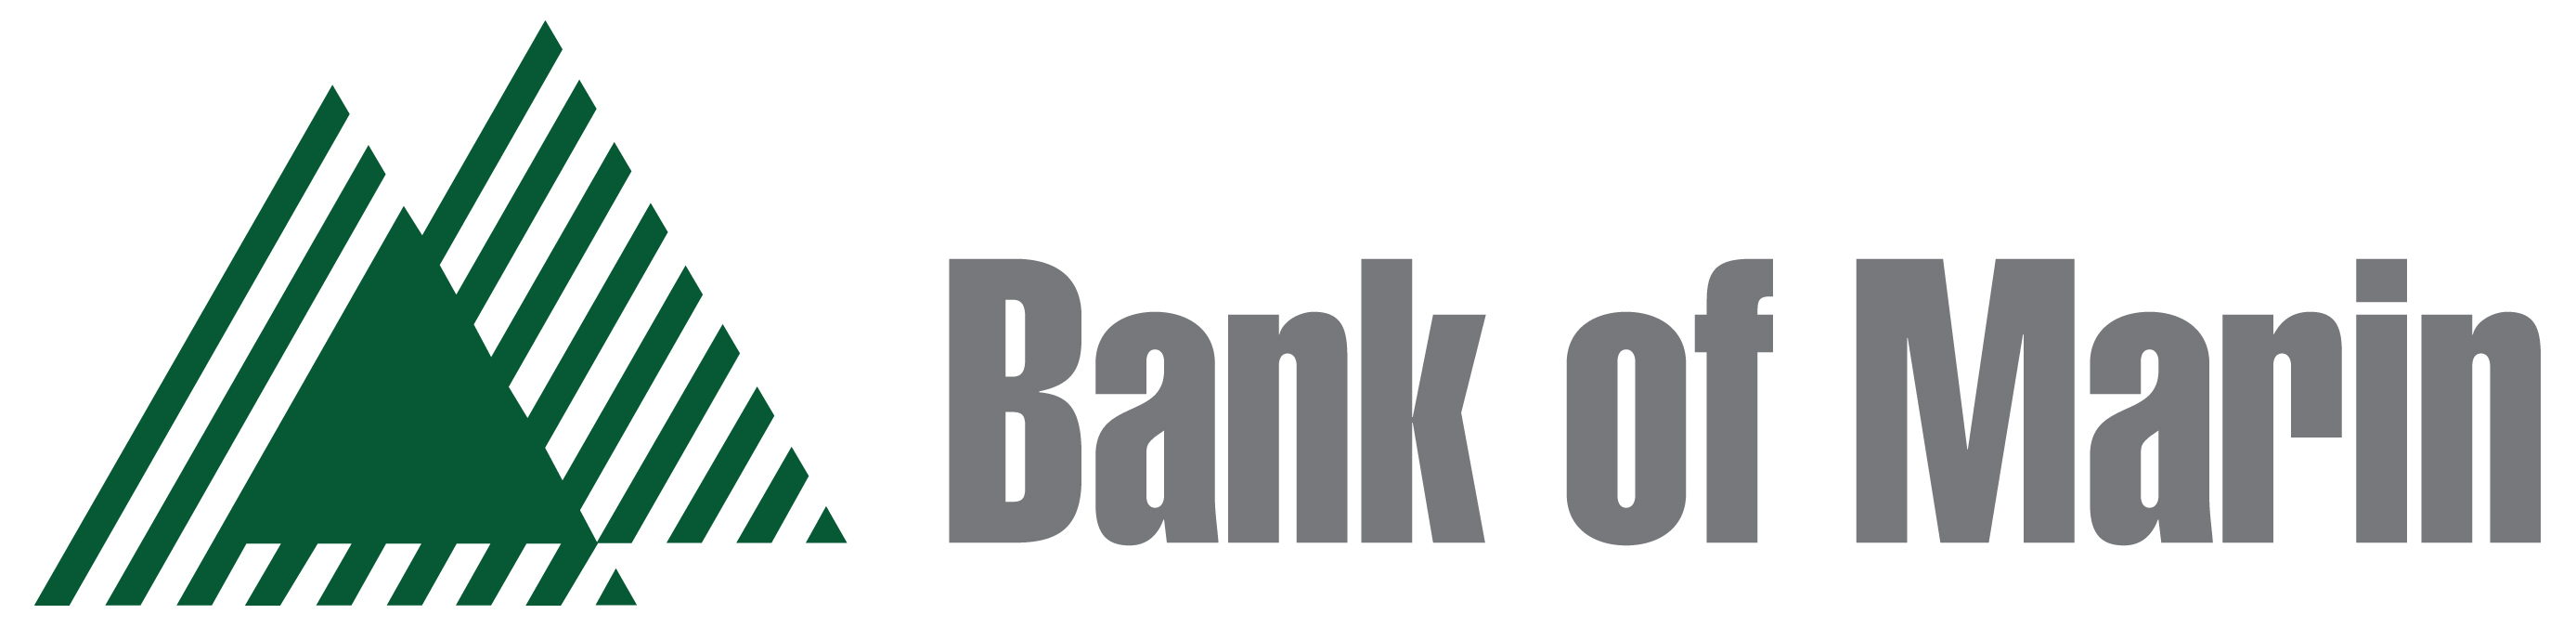 Bank of Marin Logo photo - 1